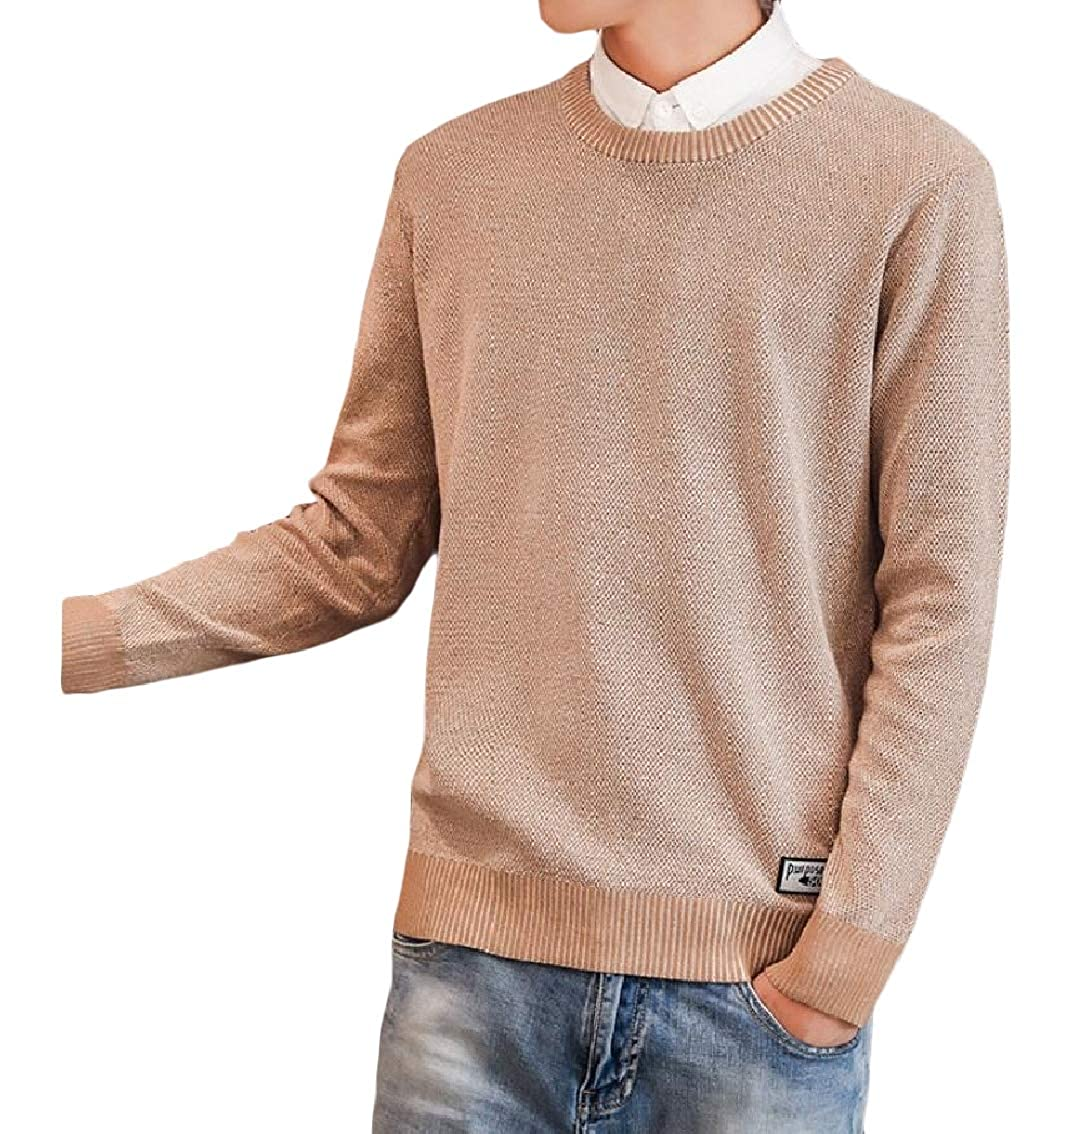 Coolred-Men Round Neck Long Sleeve Knitted Pure Colour Warm Casual Sweater Top